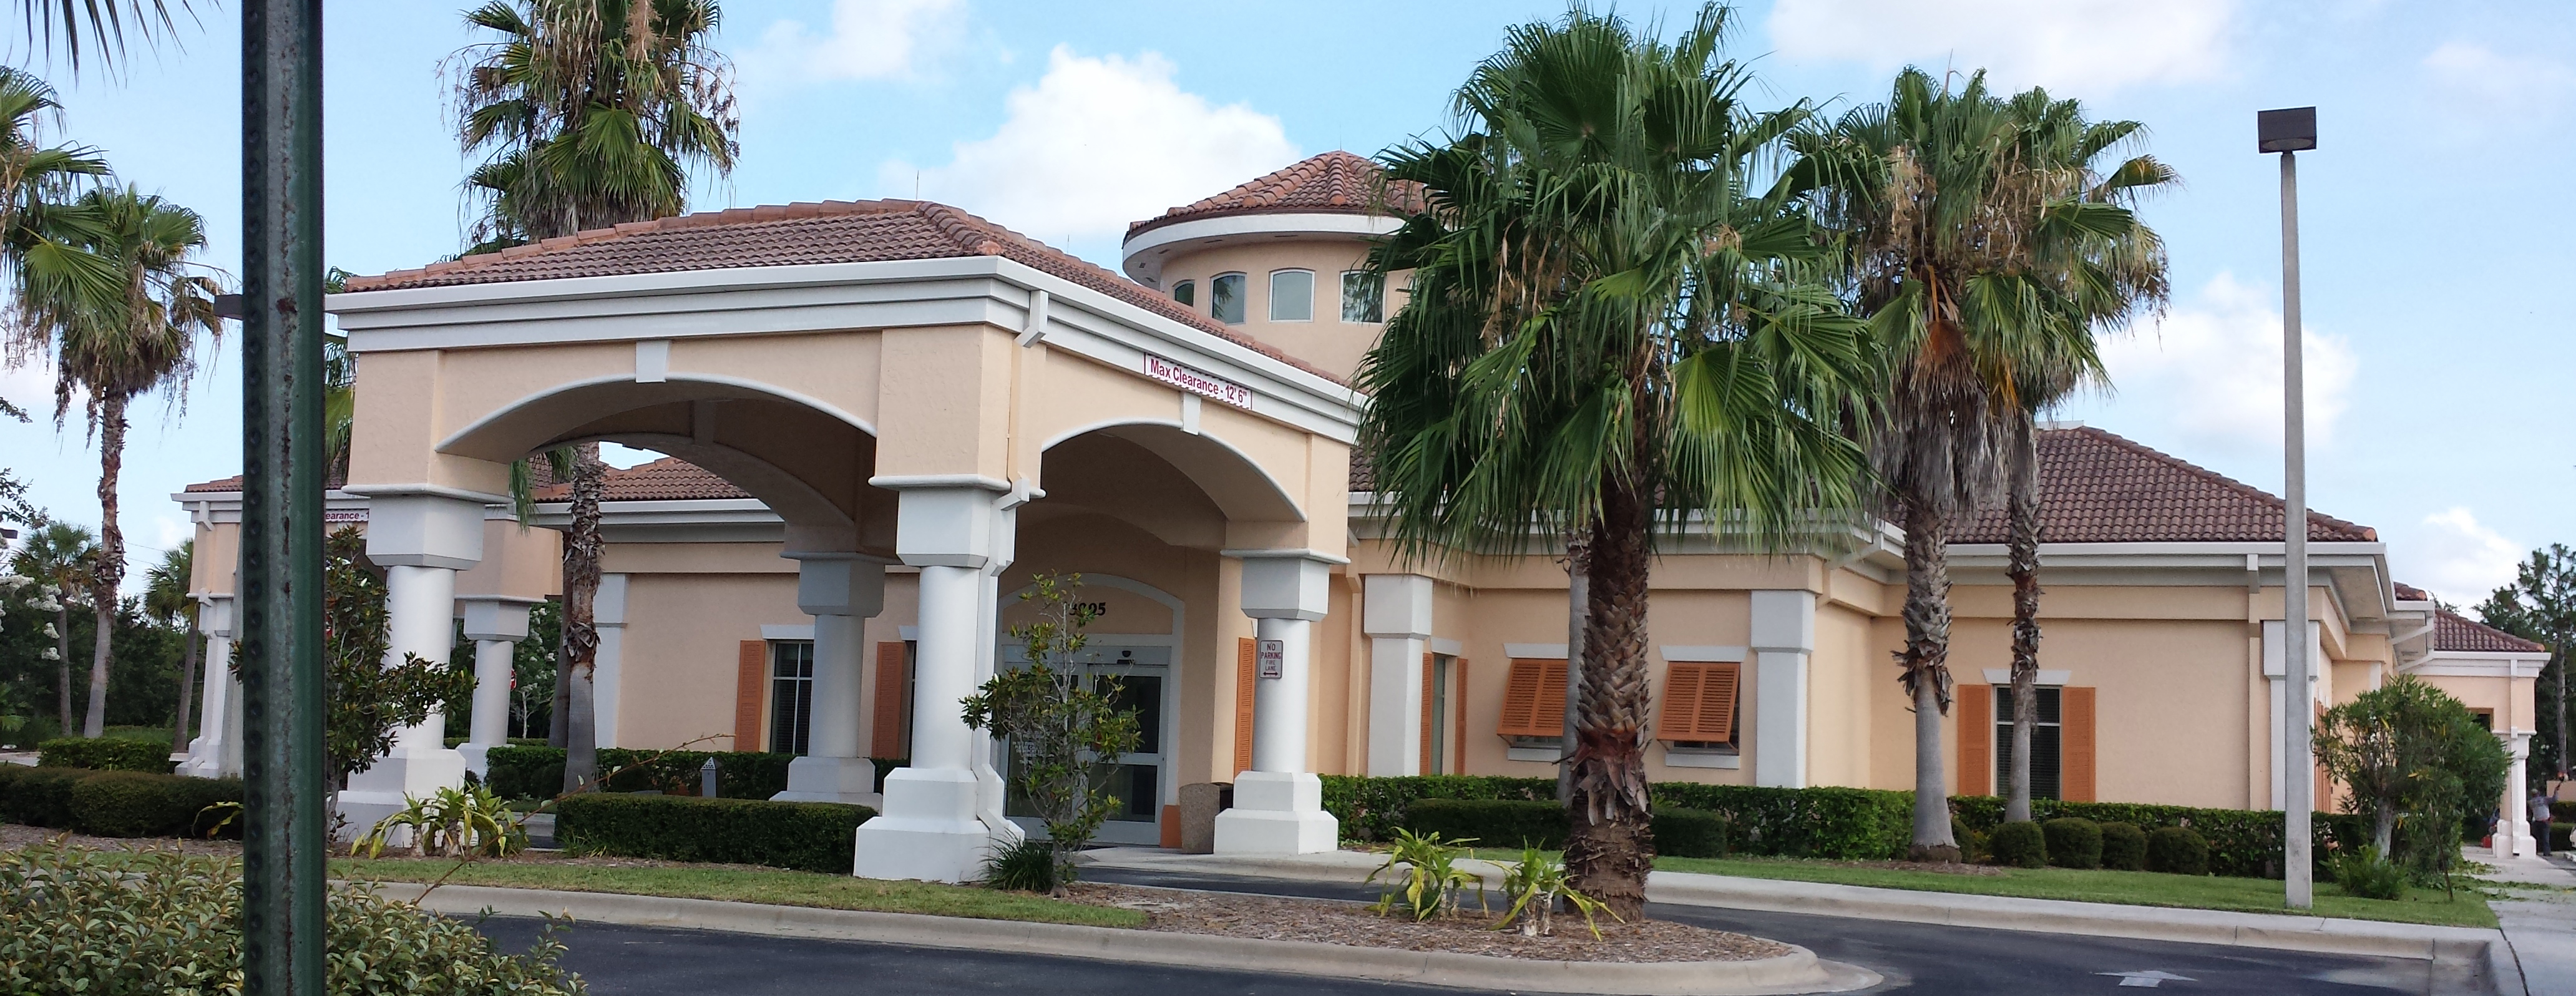 Jensen Beach Building